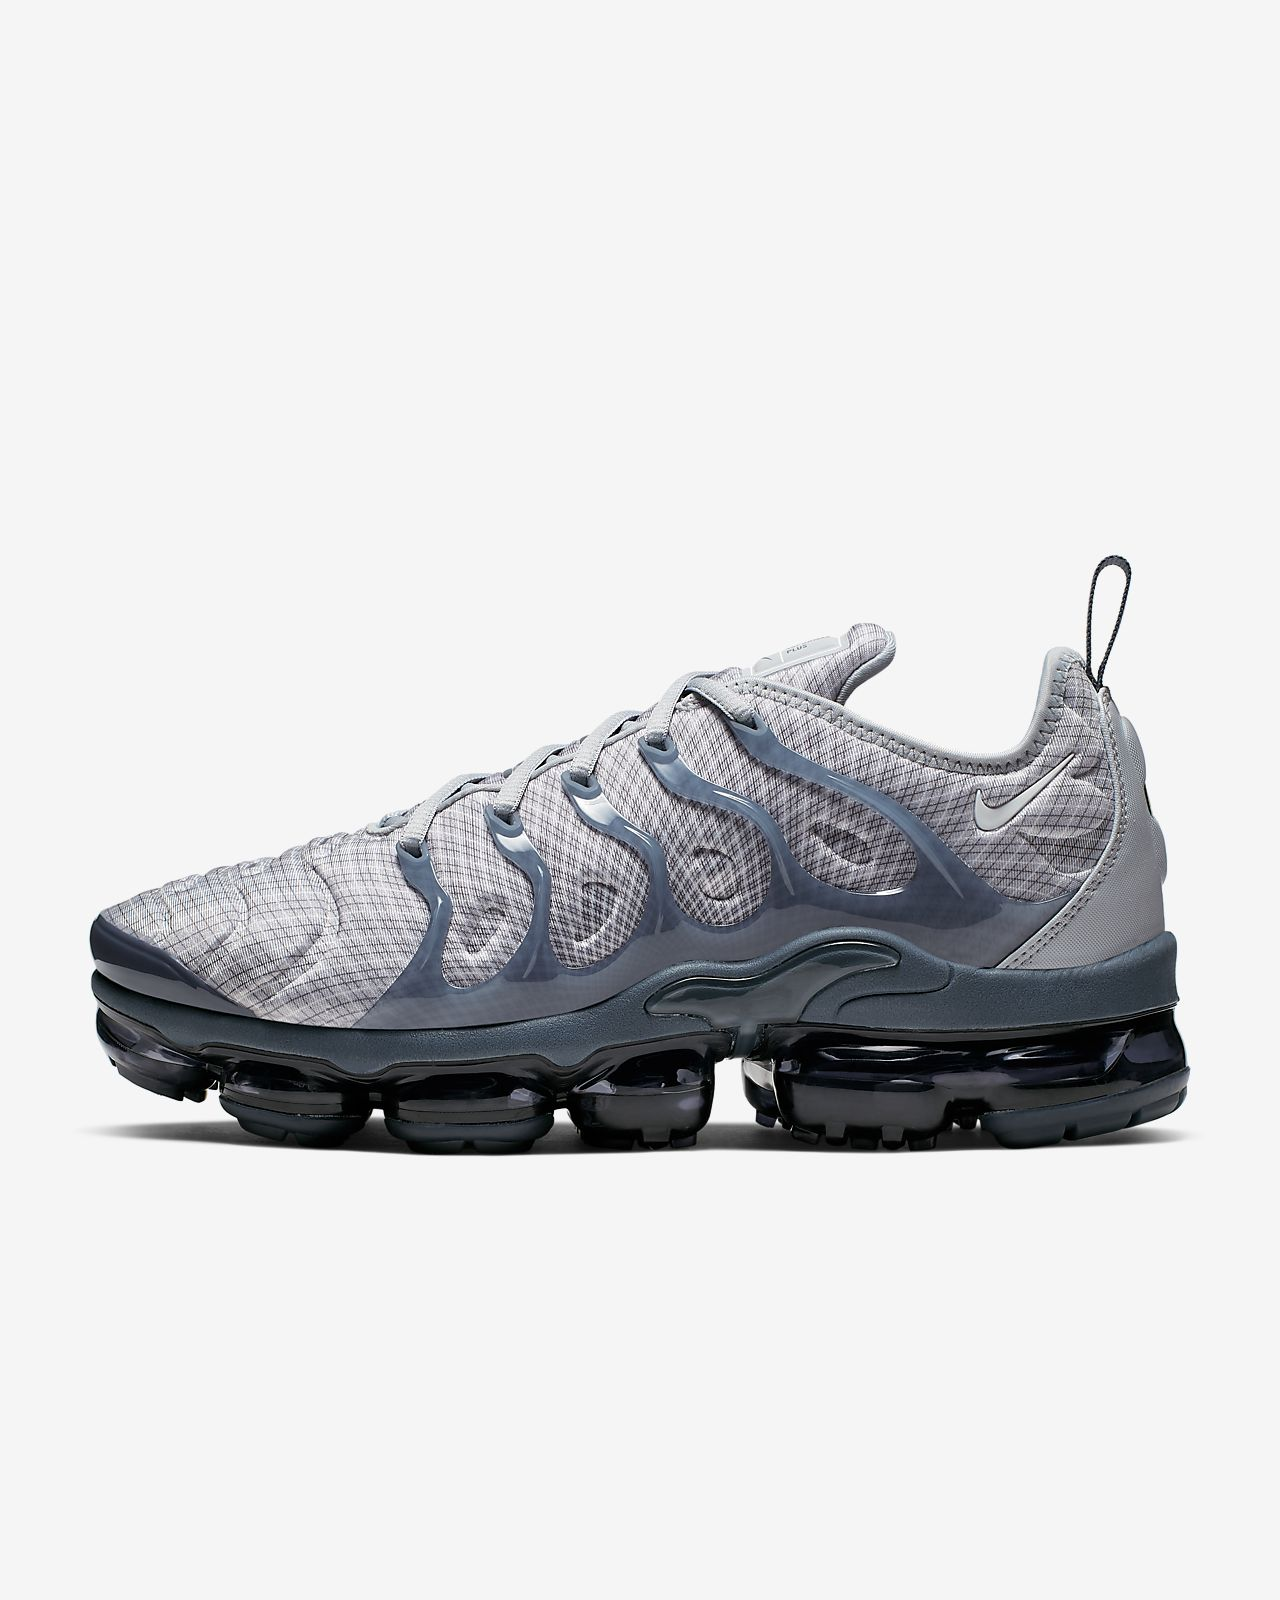 Udsalg Nike Fritidssko Herre Nike Air Max Plus Sort